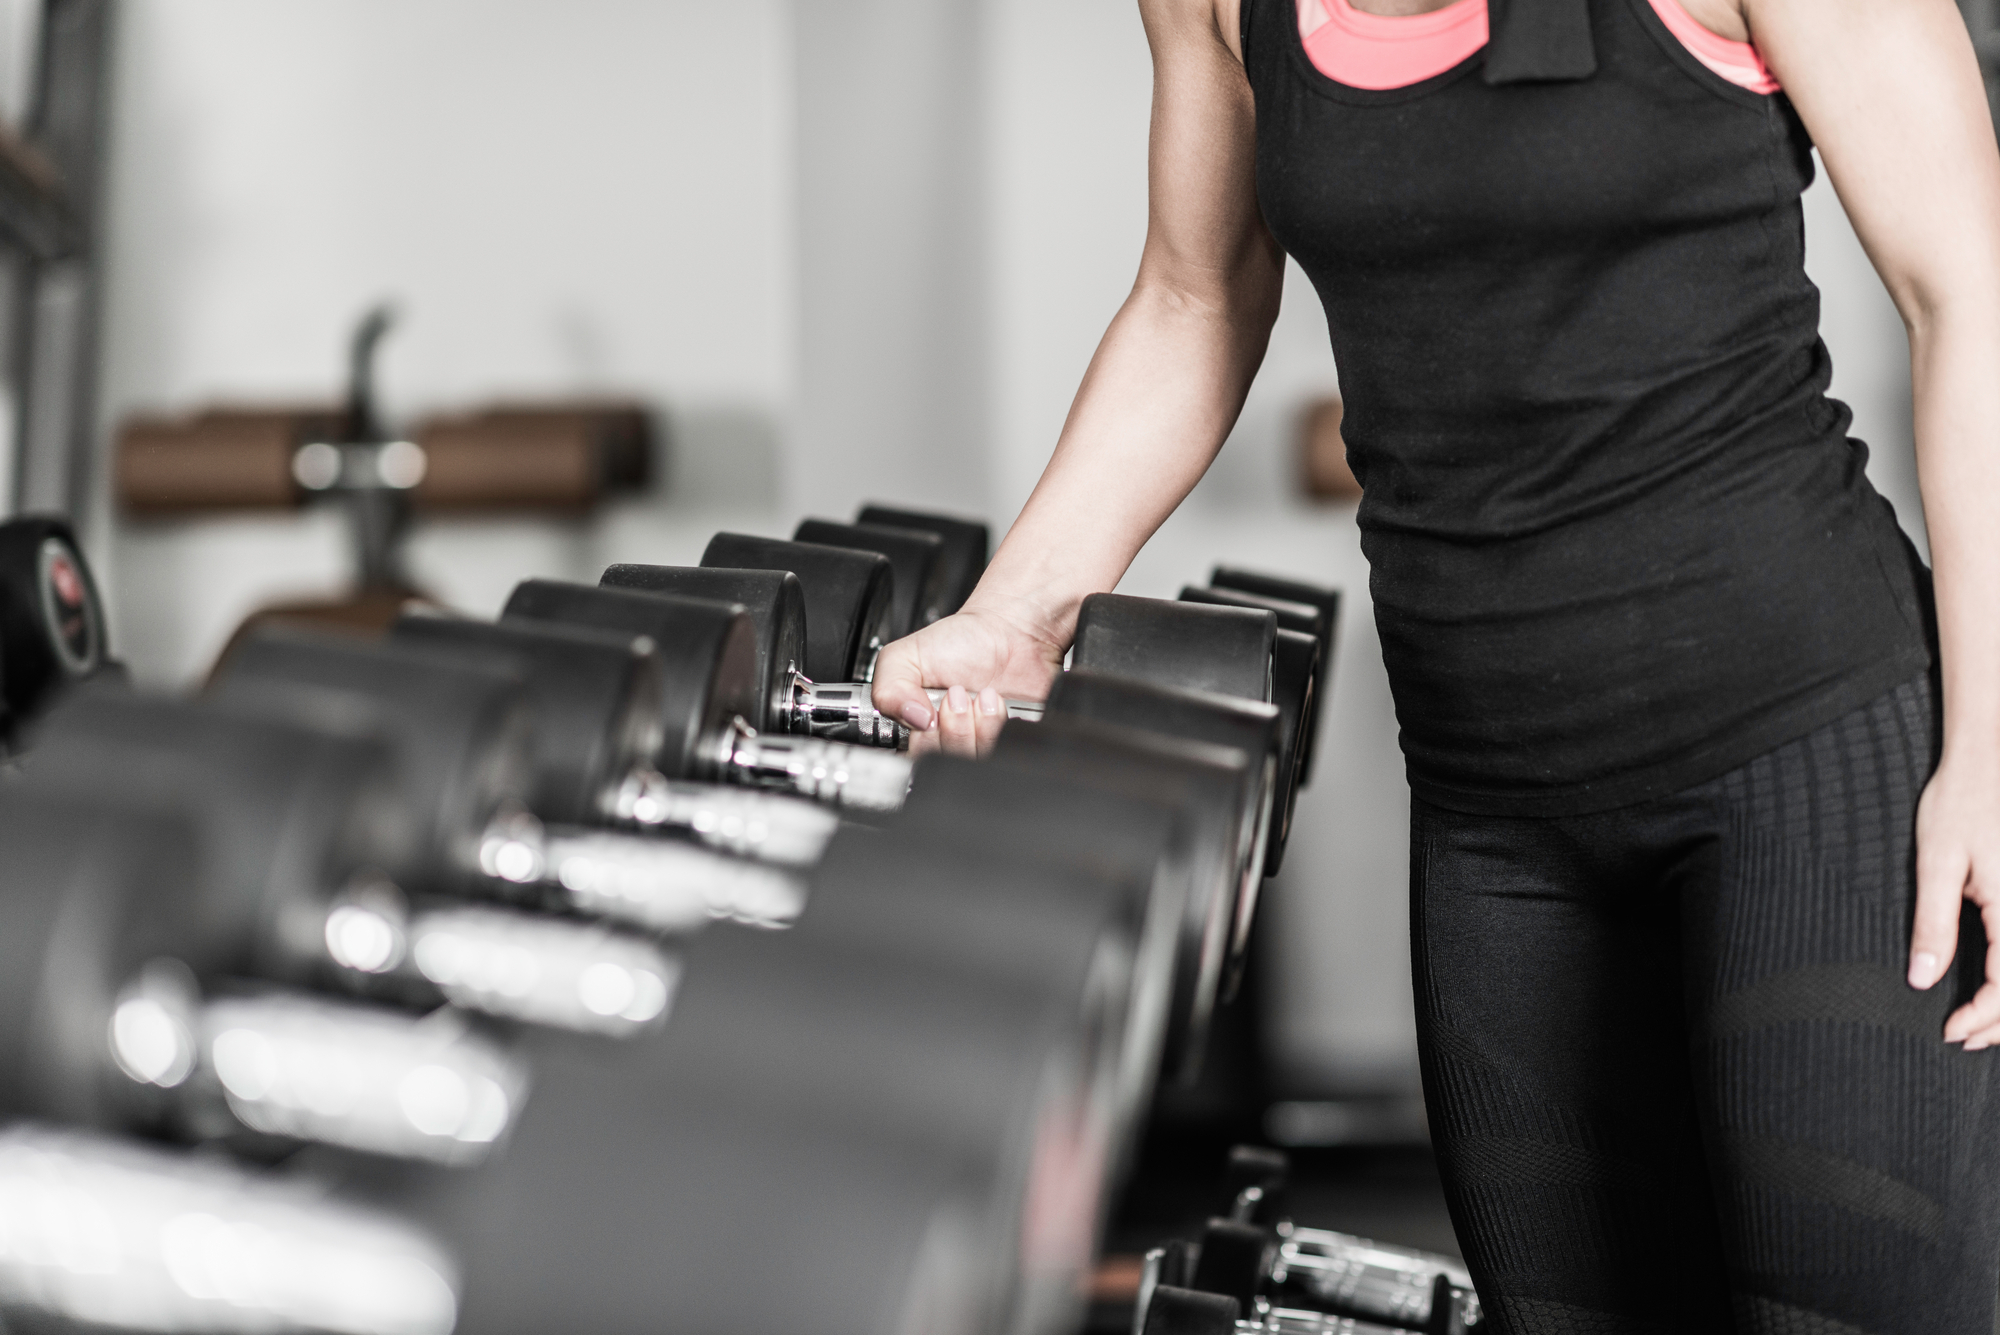 Why Women Should Lift Weights: Words of Advice From Brandi Binkley for Women Who Lift